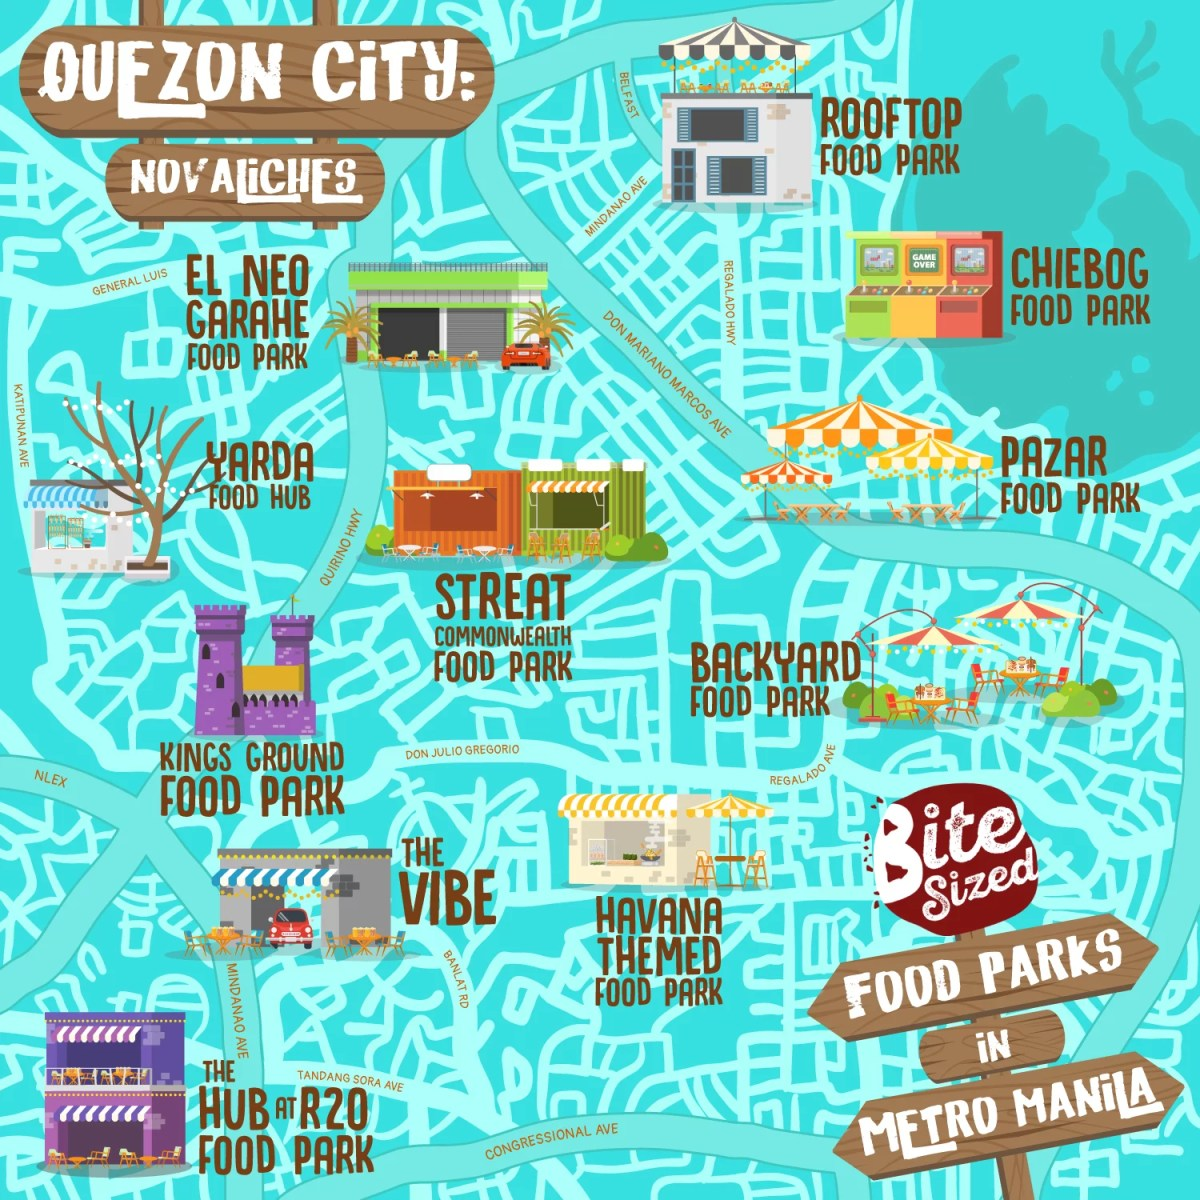 food parks in quezon city novaliches